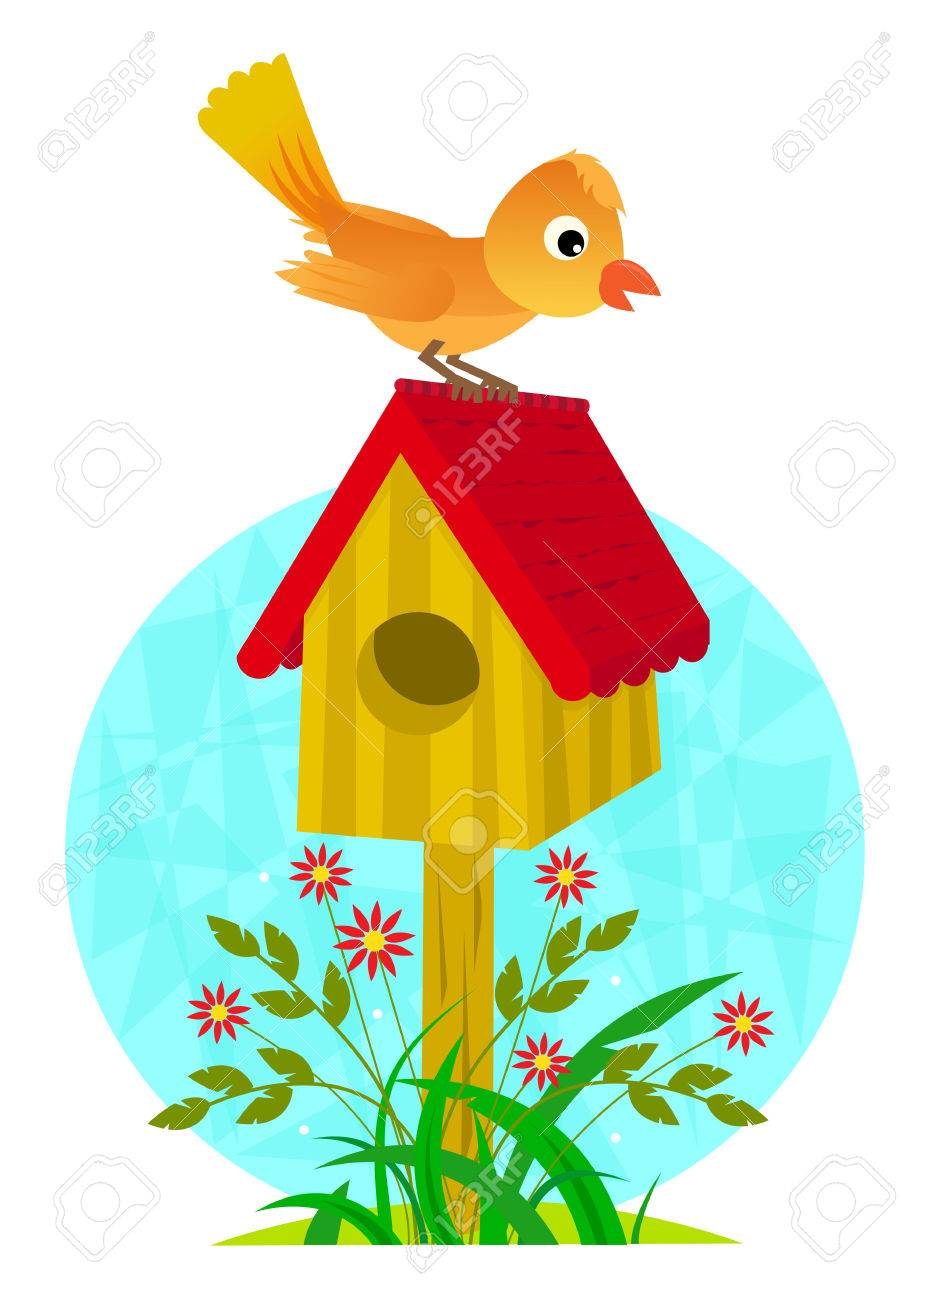 birdhouse and bird cute clip art of a bird standing on a rh 123rf com birdhouse clip art free birdhouse clip art borders